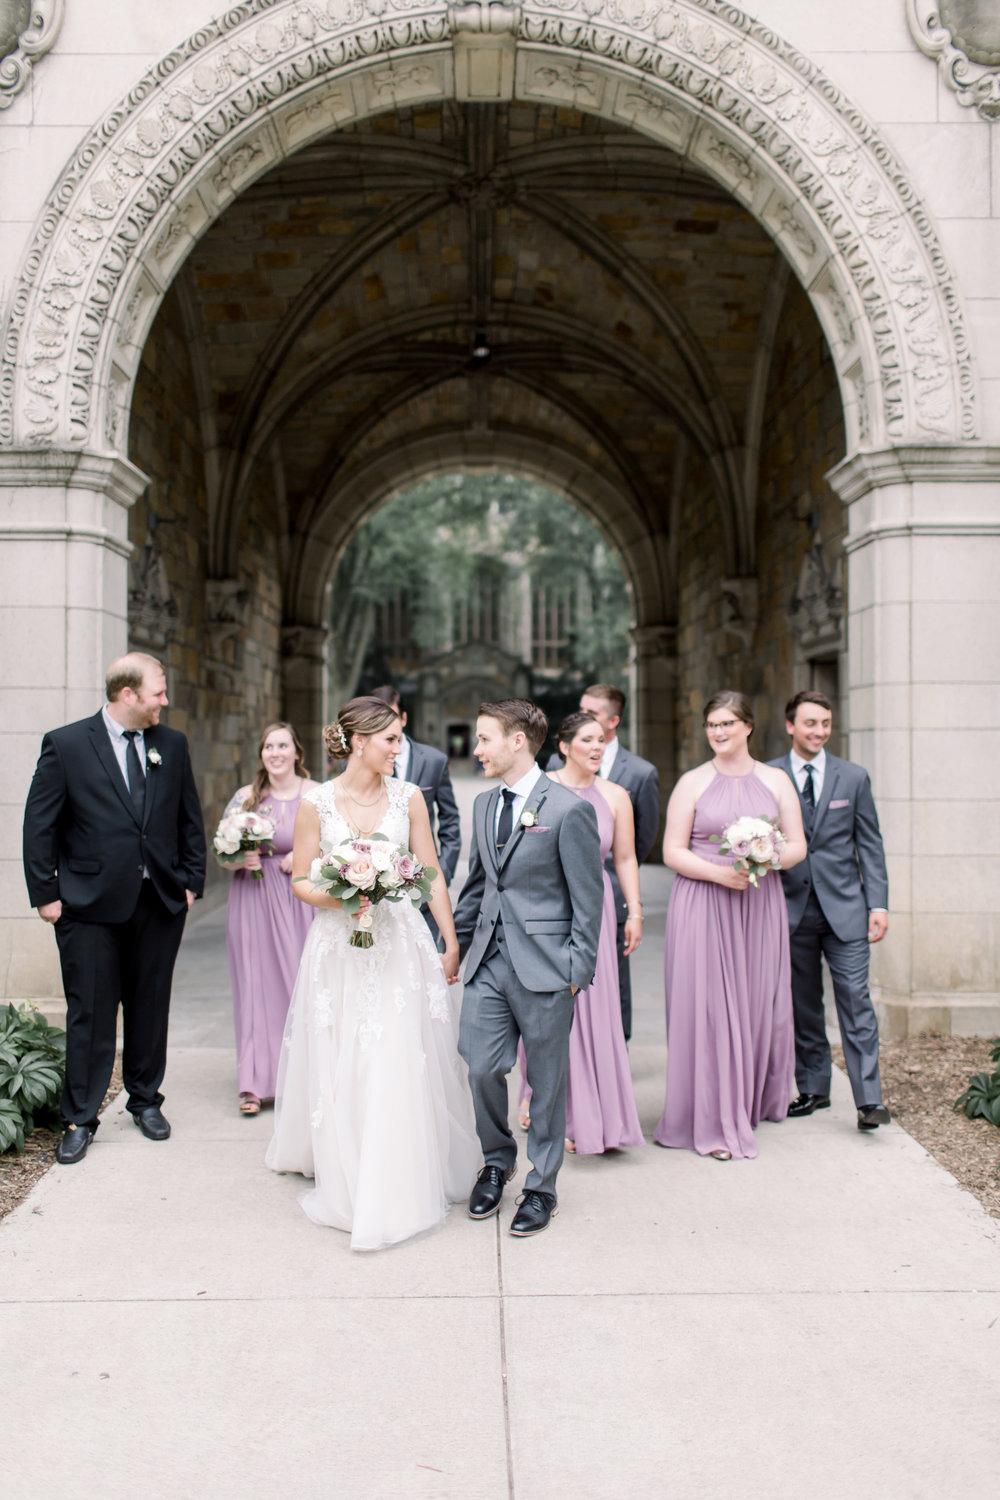 The bride and groom with their wedding party on the University of Michigan campus. Captured by Tiffany Kelly of  TRK Photography